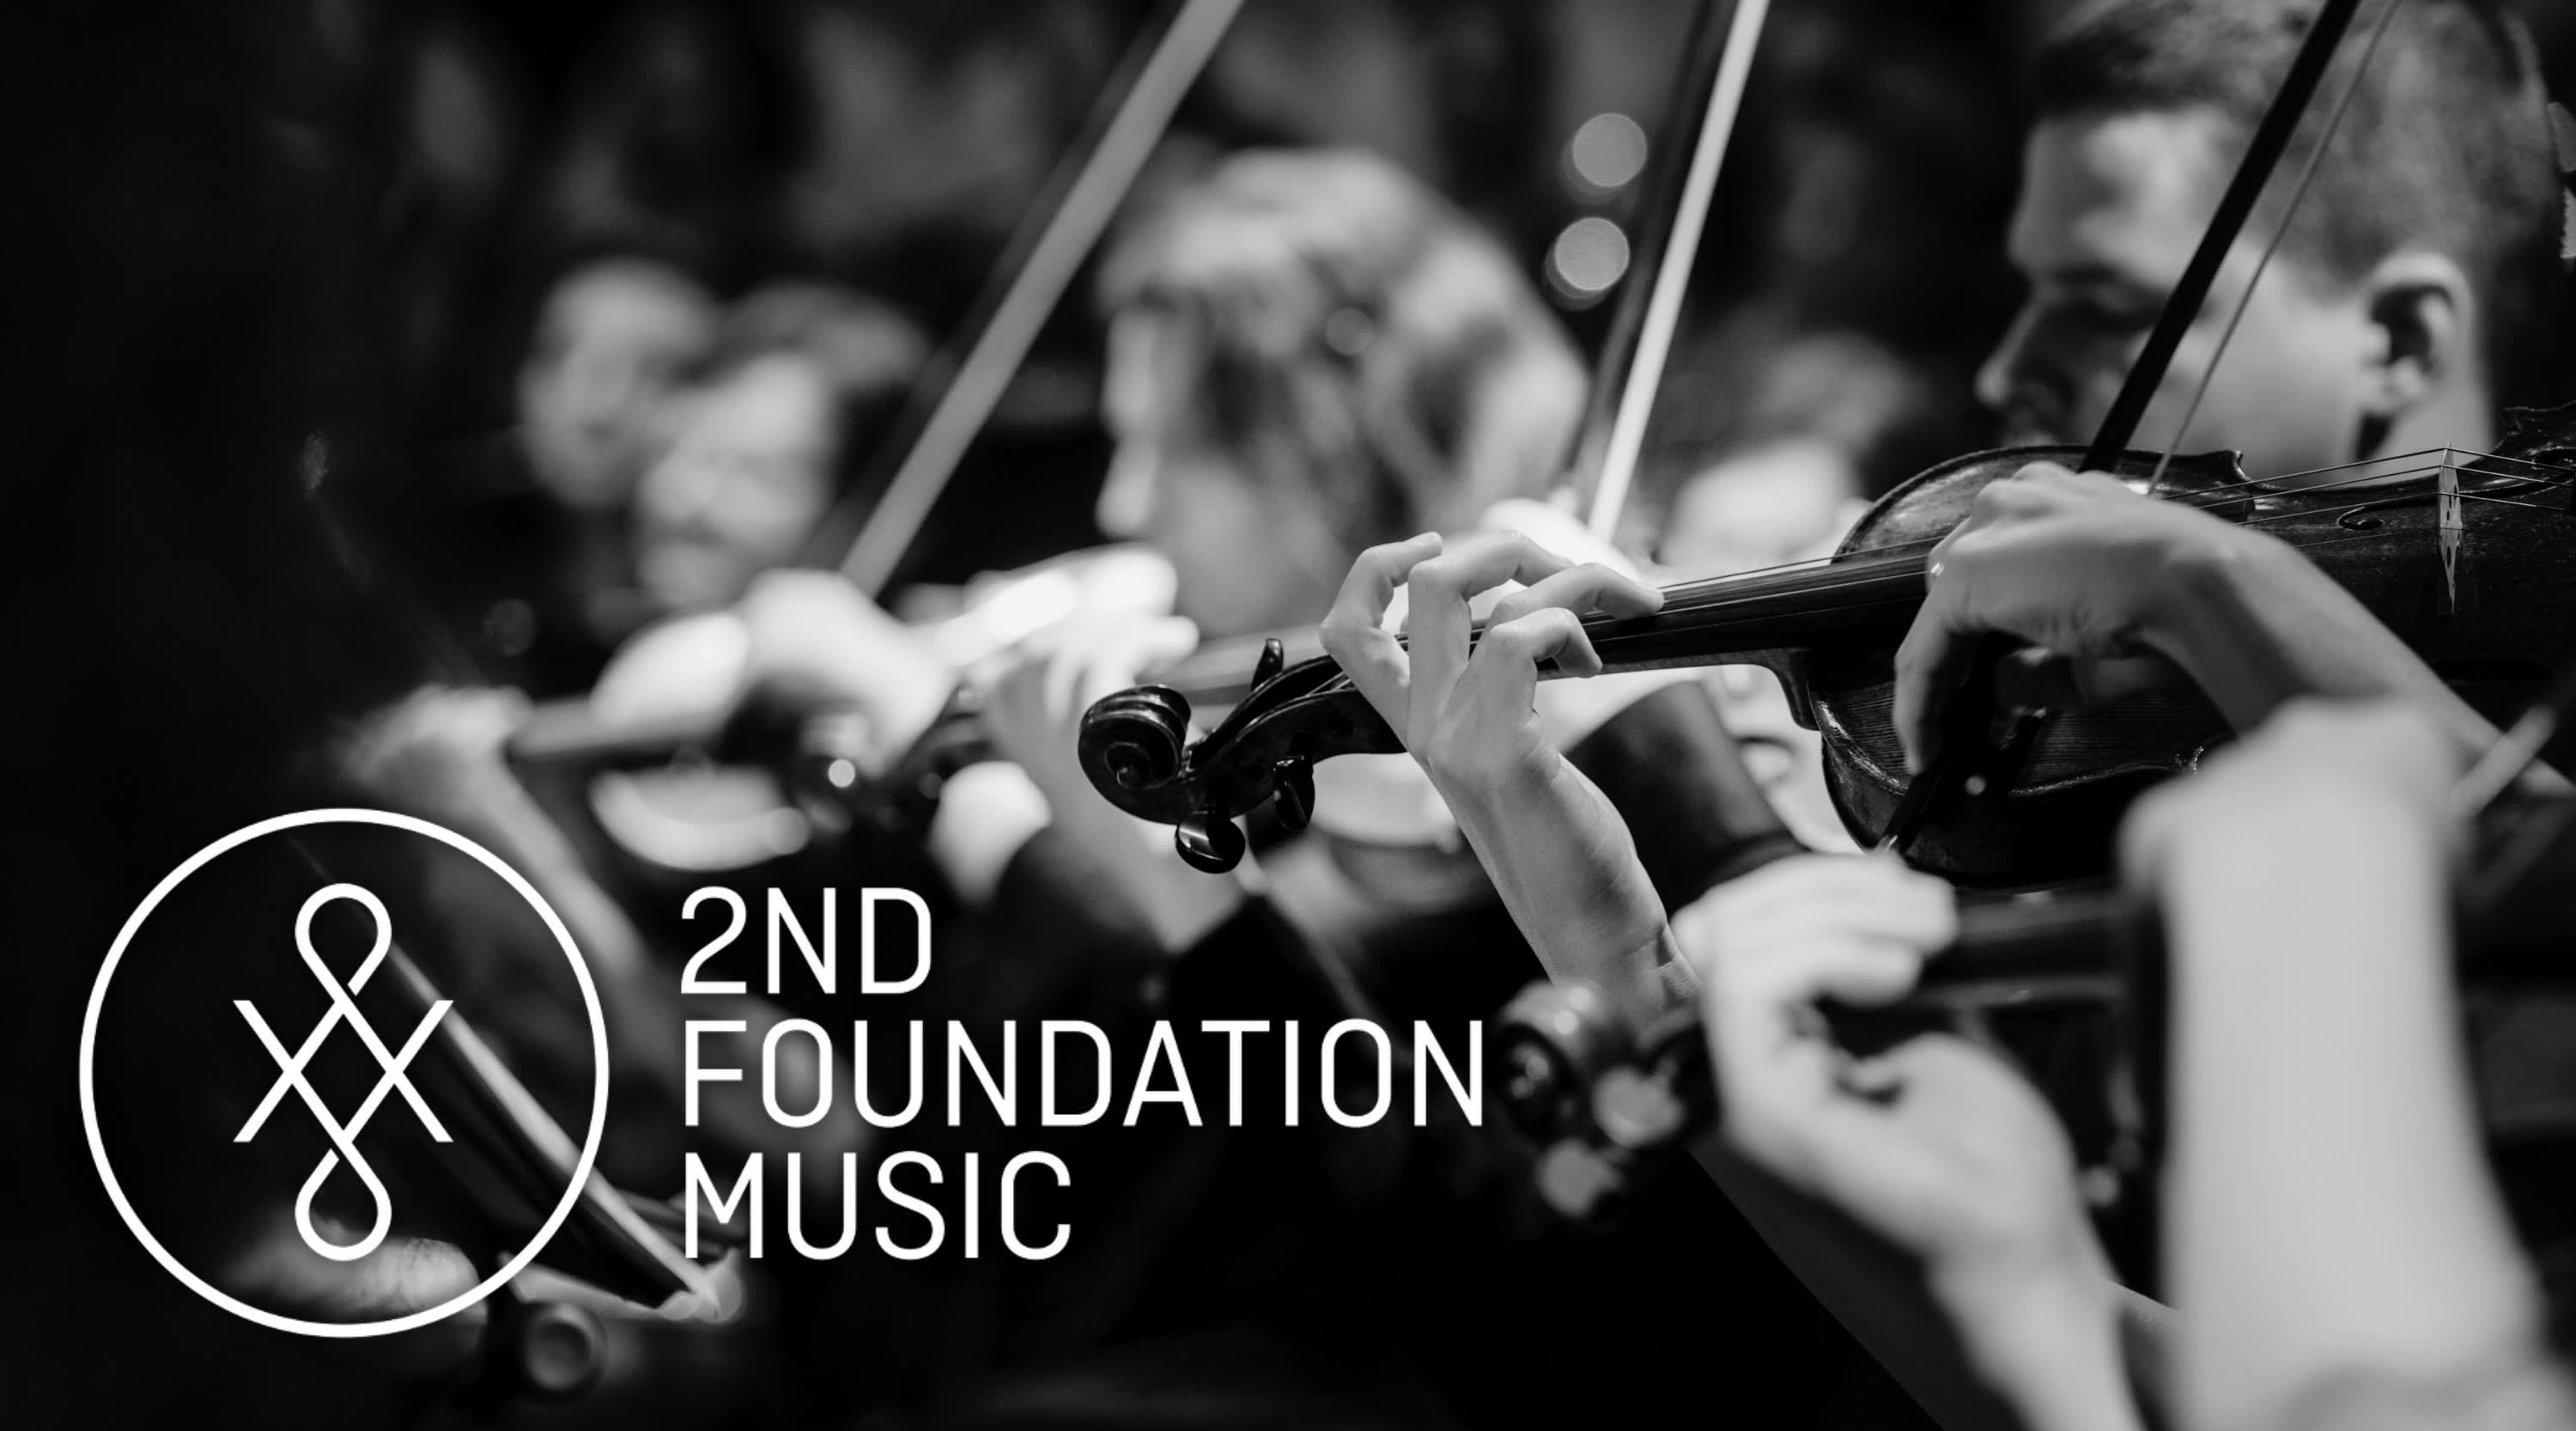 Label Special: 2nd Foundation Music